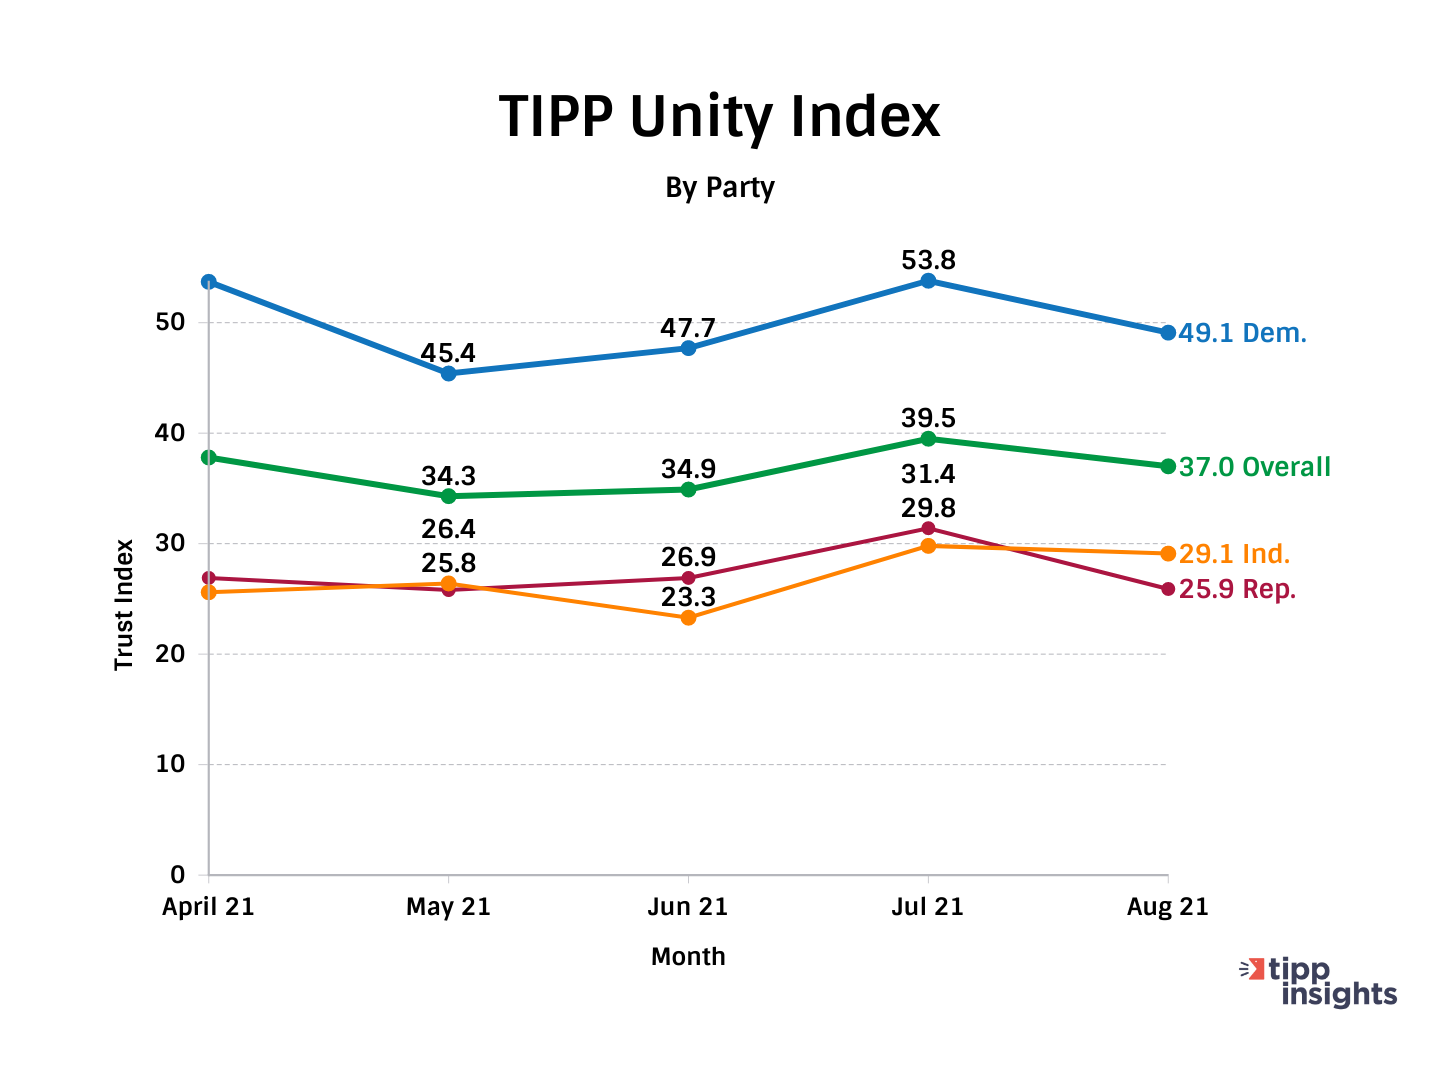 TIPP Poll Tracking Unity Index in the United States